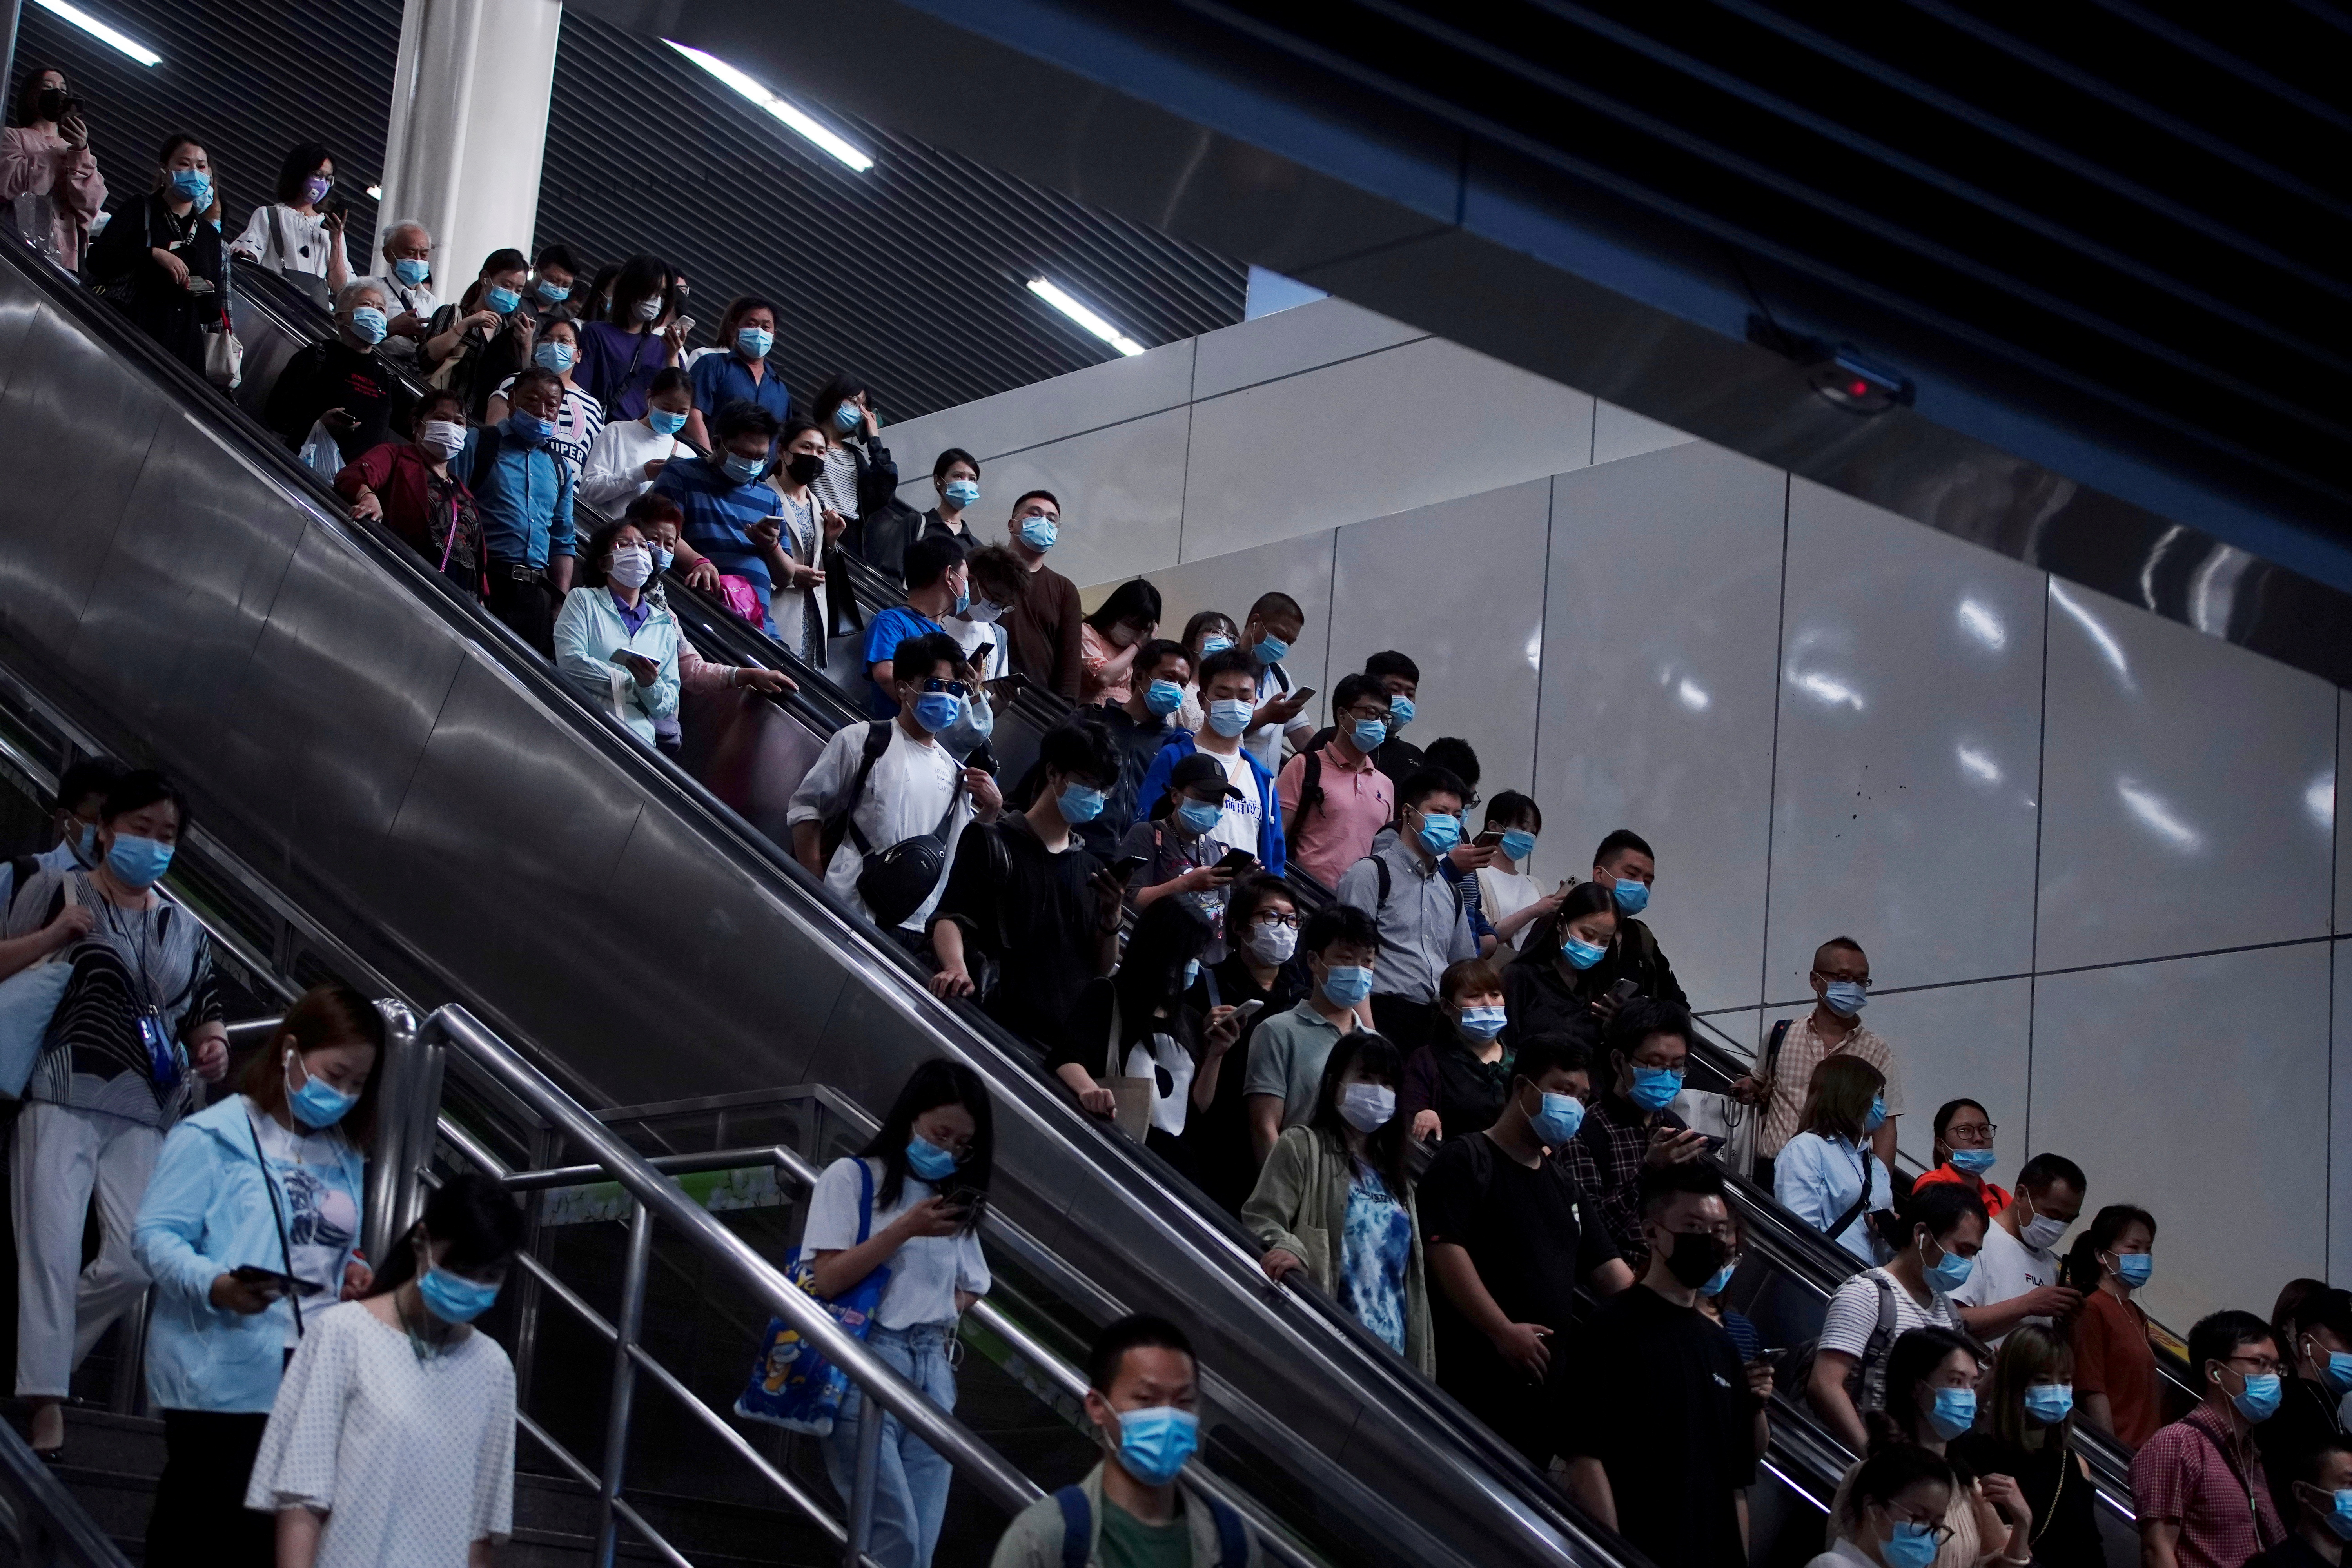 People walk at a subway station, following the outbreak of the coronavirus disease (COVID-19), in Shanghai, China May 11, 2021. REUTERS/Aly Song